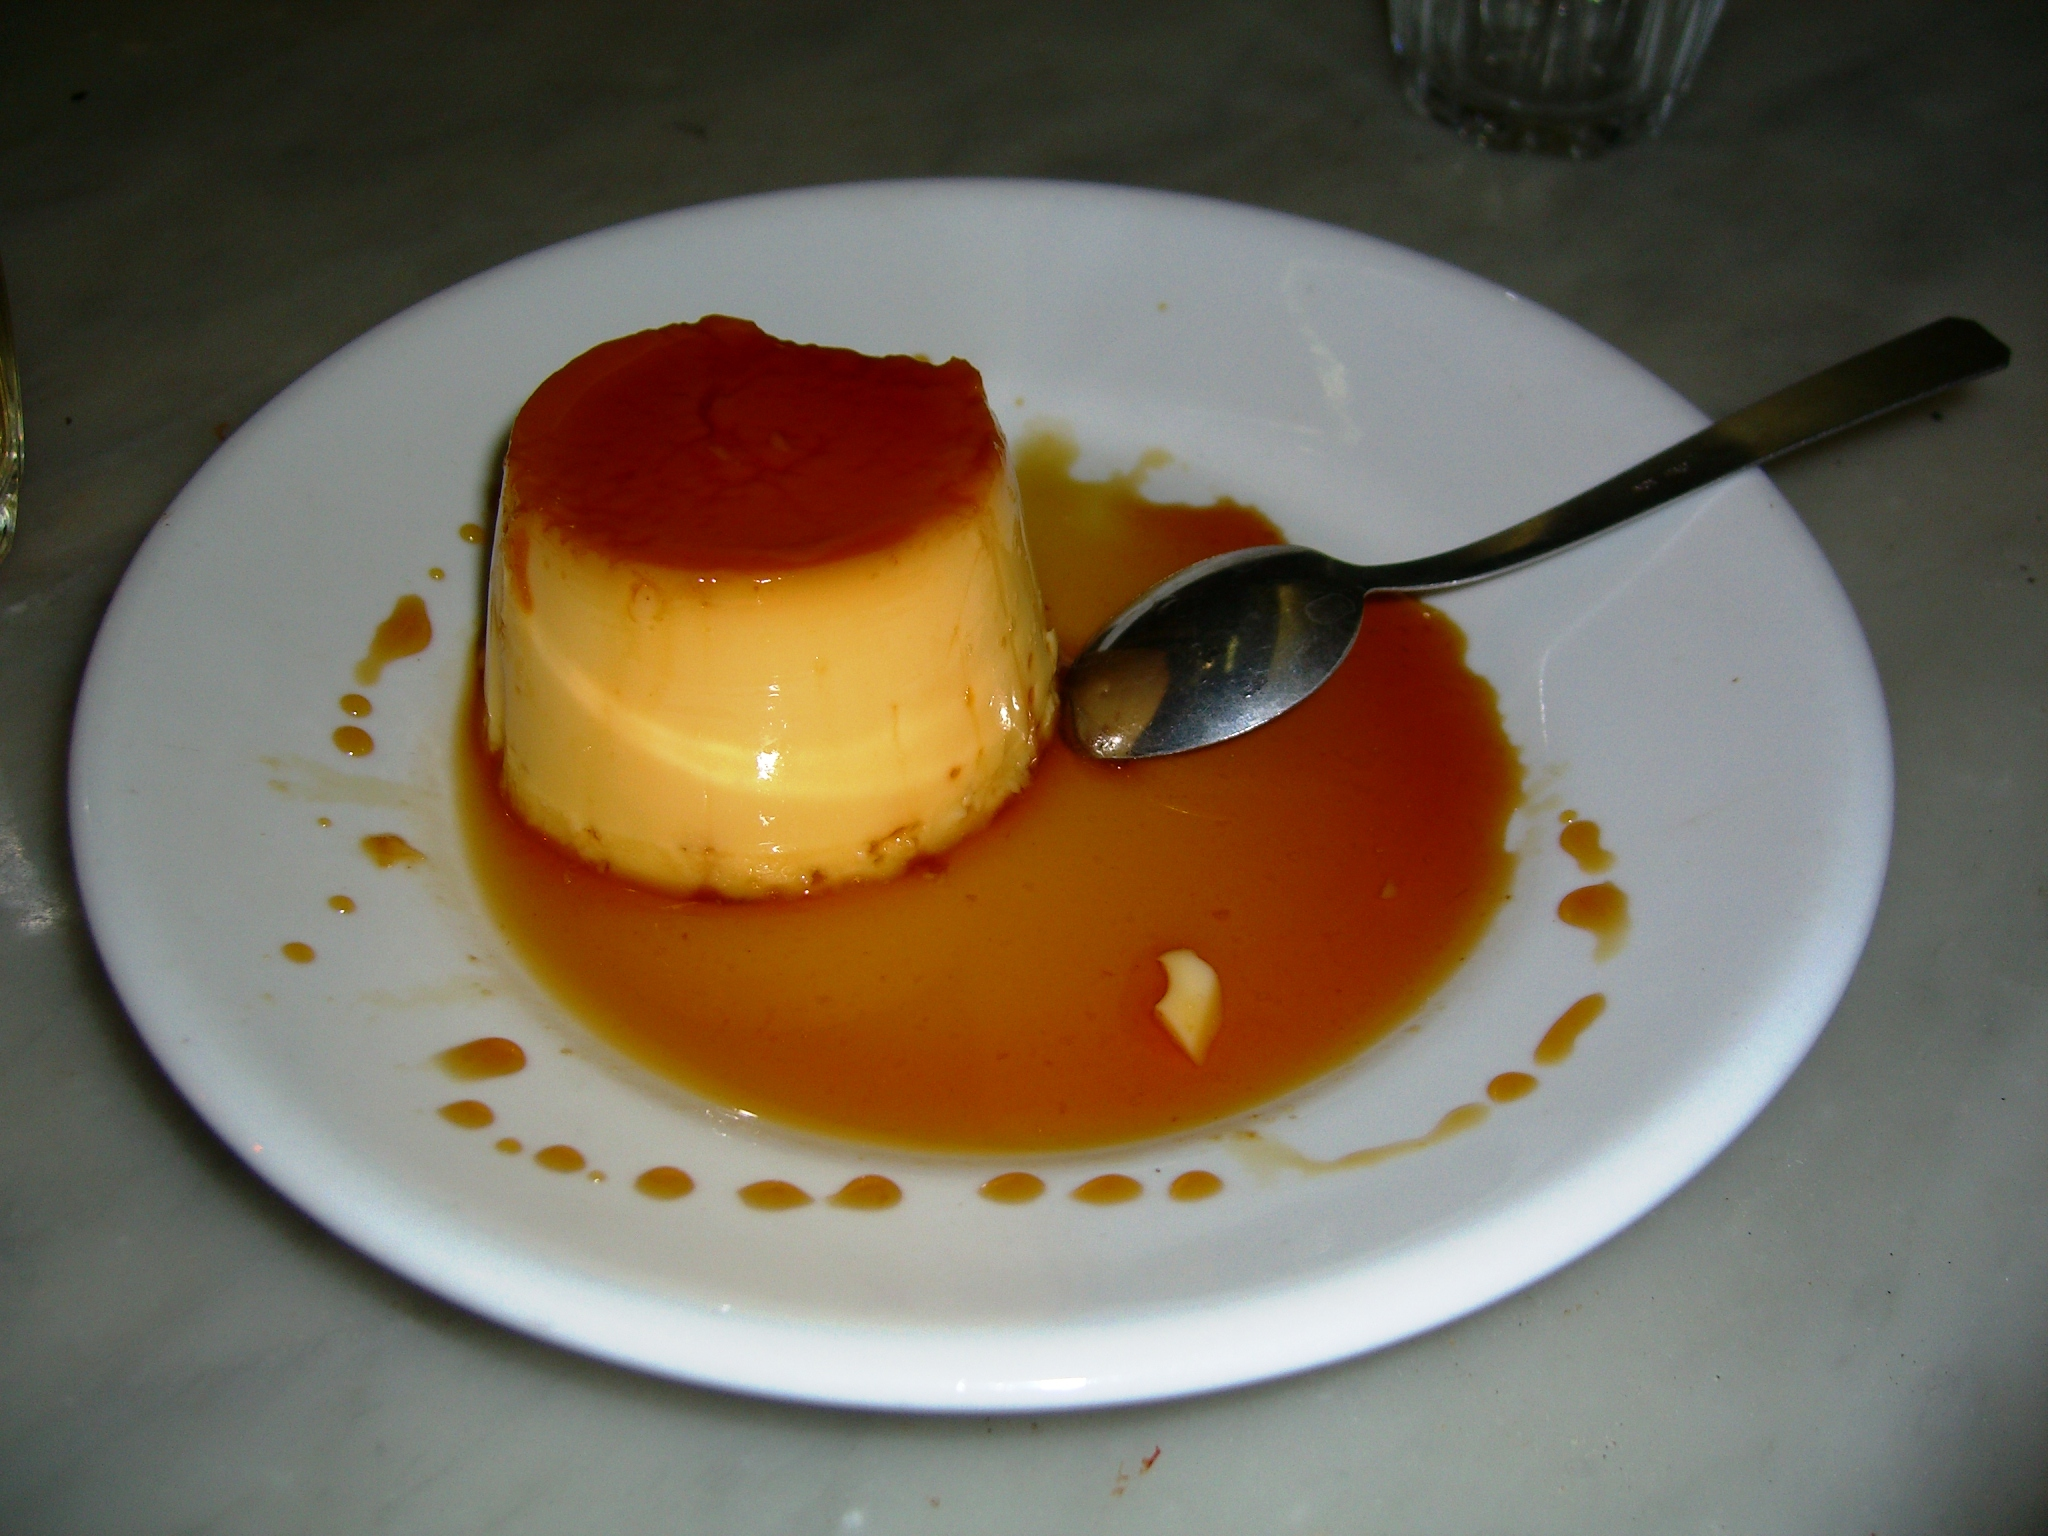 https://upload.wikimedia.org/wikipedia/commons/8/89/Italian_Creme_Caramel.JPG